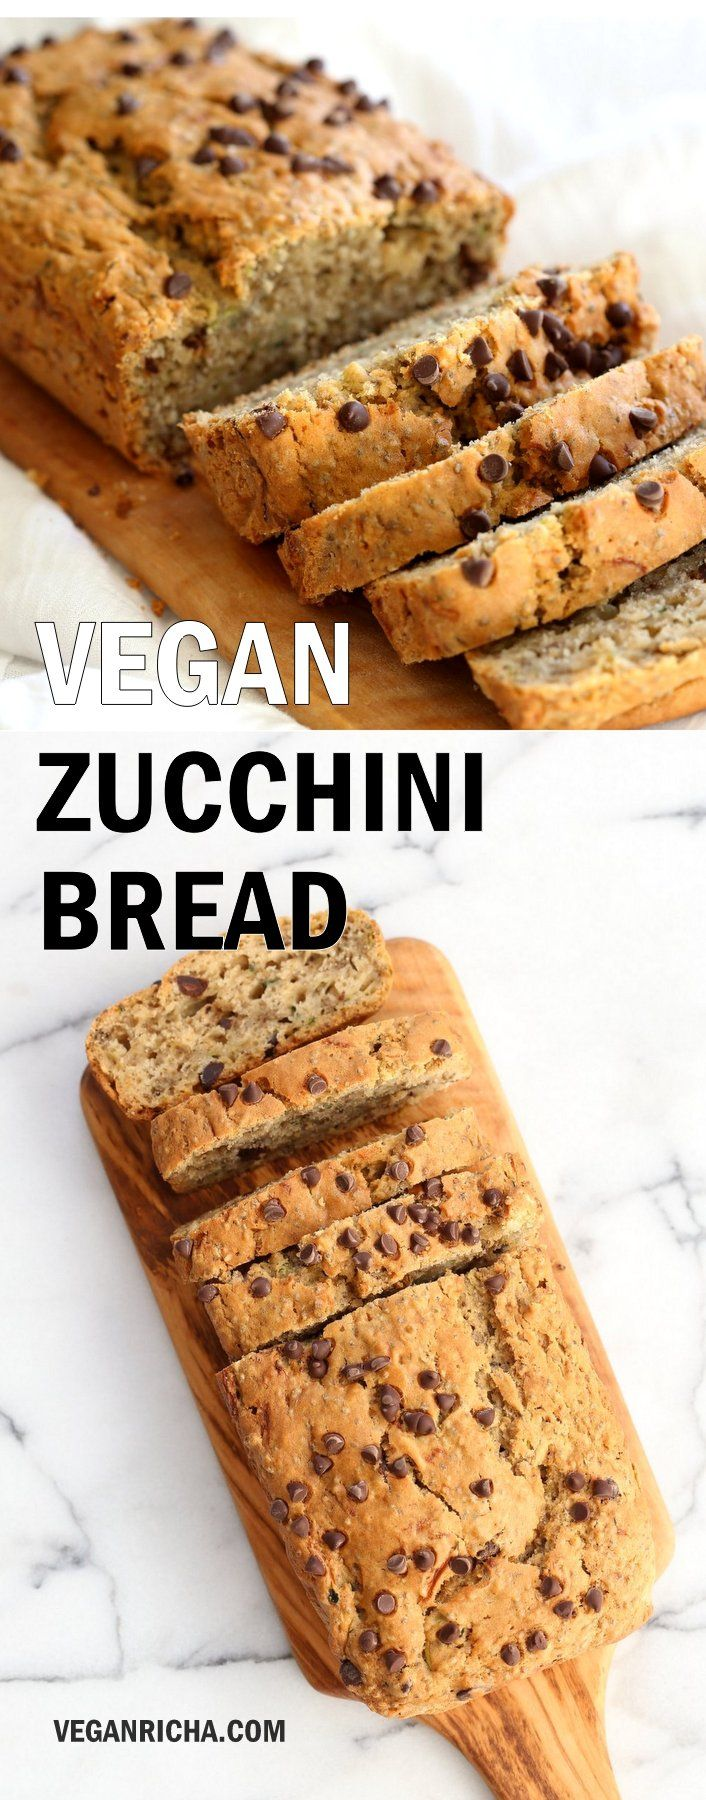 Easy Vegan Zucchini Bread With Chia Seeds Recipe Zucchini Bread Recipes Vegan Desserts Zucchini Bread